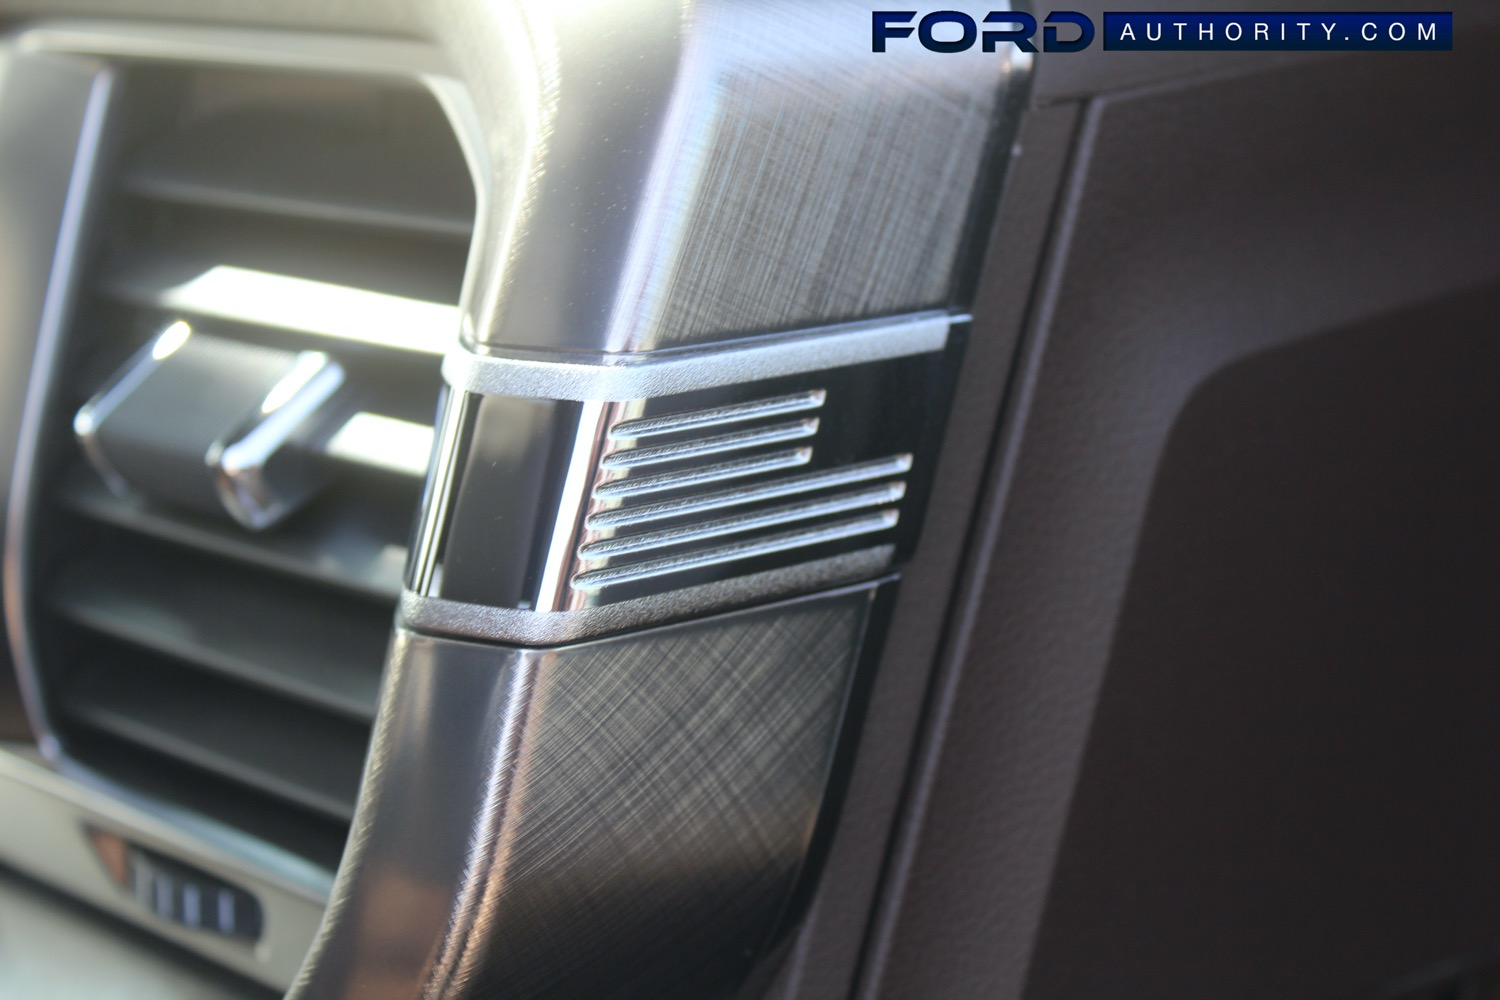 2021-Ford-F-150-King-Ranch-Interior-Front-Row-034-passenger-side-AC-vent-US-American-flag-decor.jpg